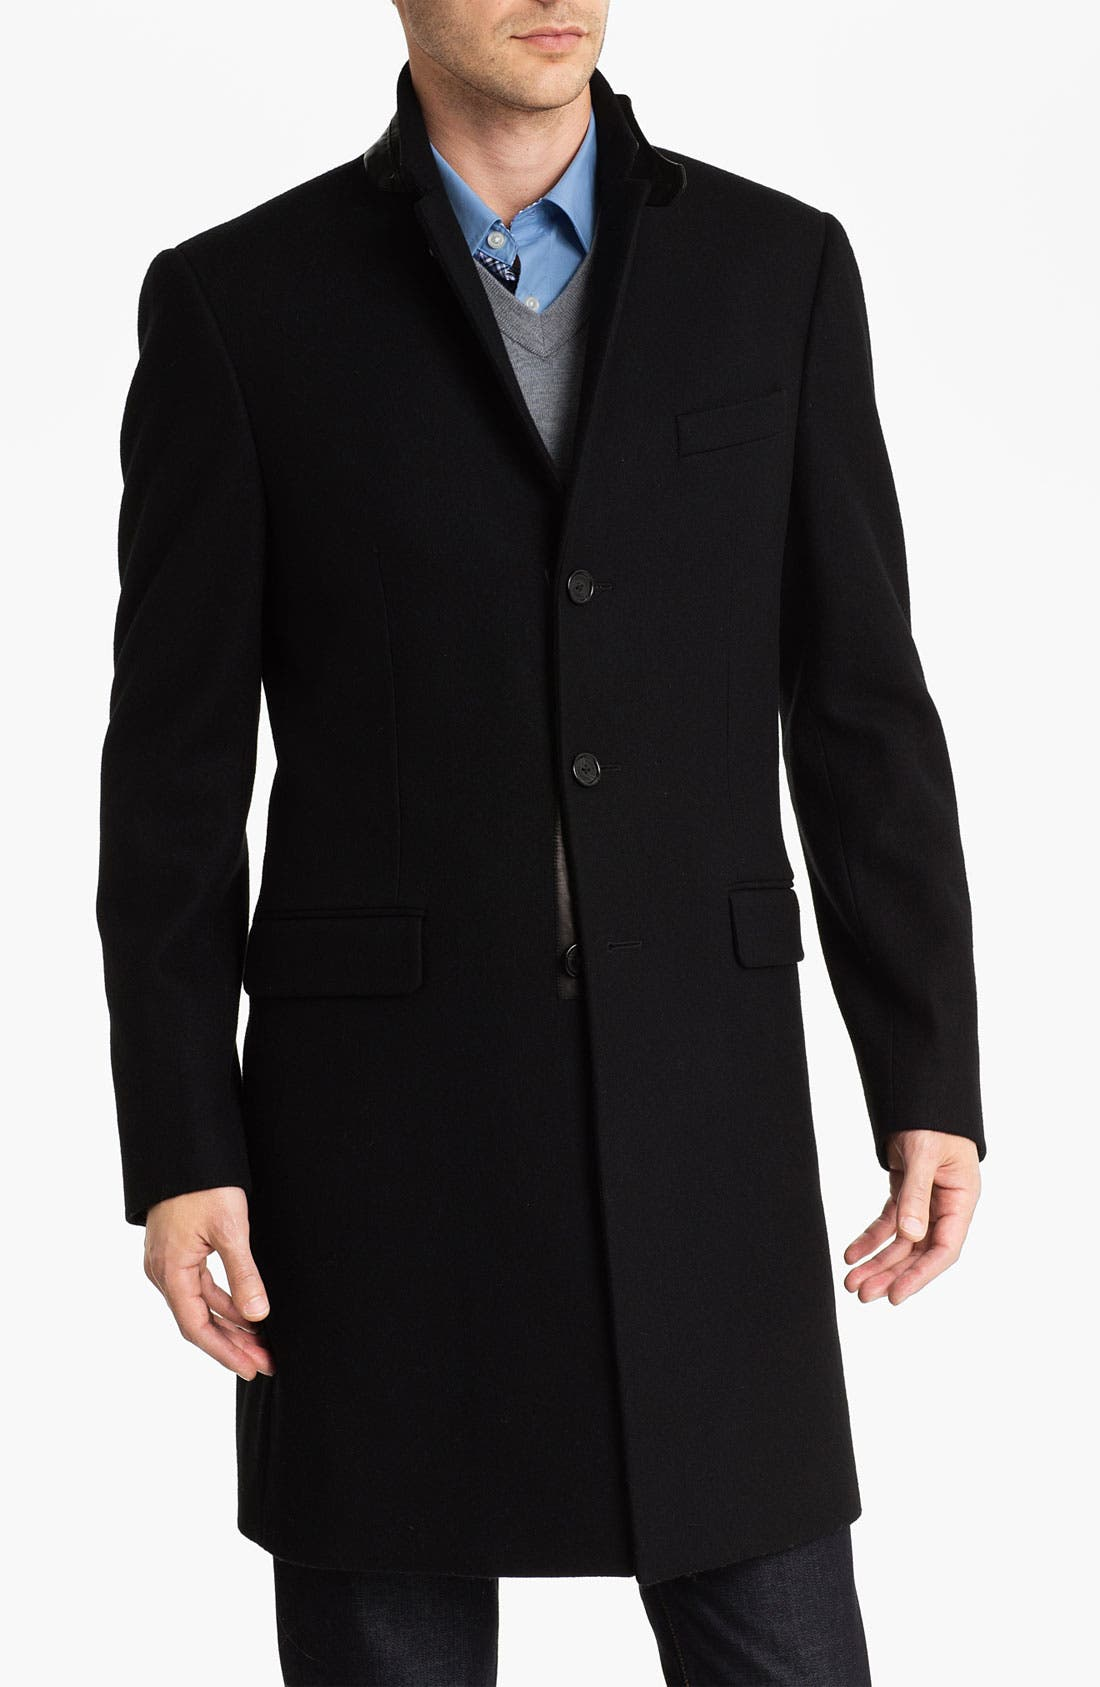 Melton Topcoat with Leather Trim,                         Main,                         color, Black